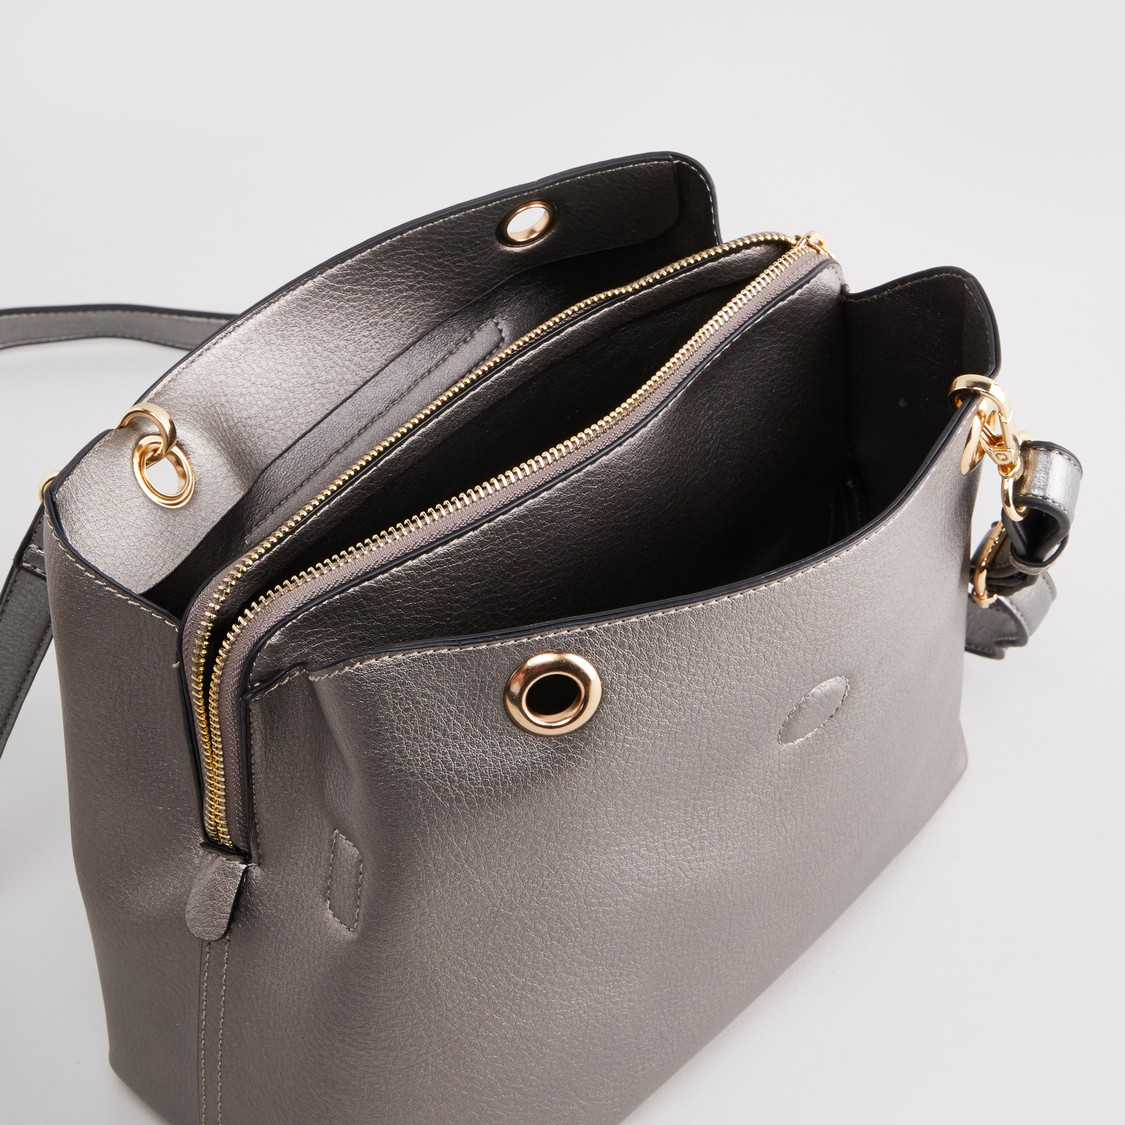 Textured Handbag with Detachable Shoulder Strap